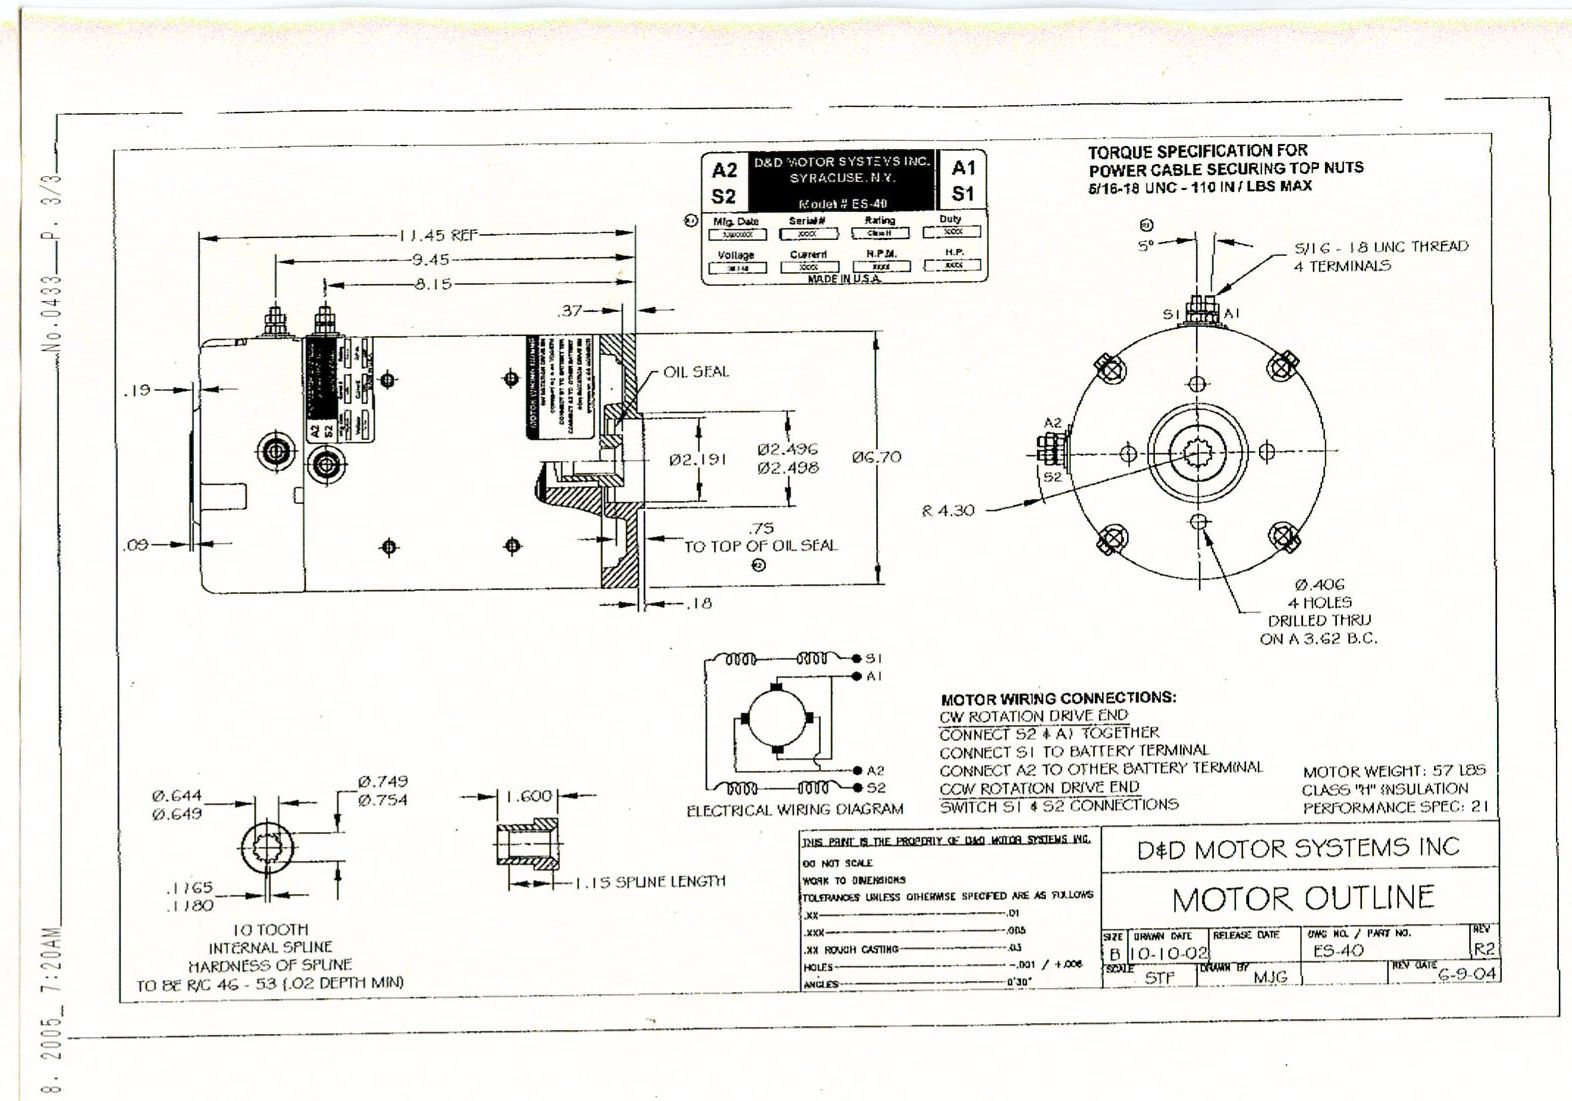 Citicar Wiring Schematic Diagram Bots Dodge Electrical Schematics Dales Page 05 Charger